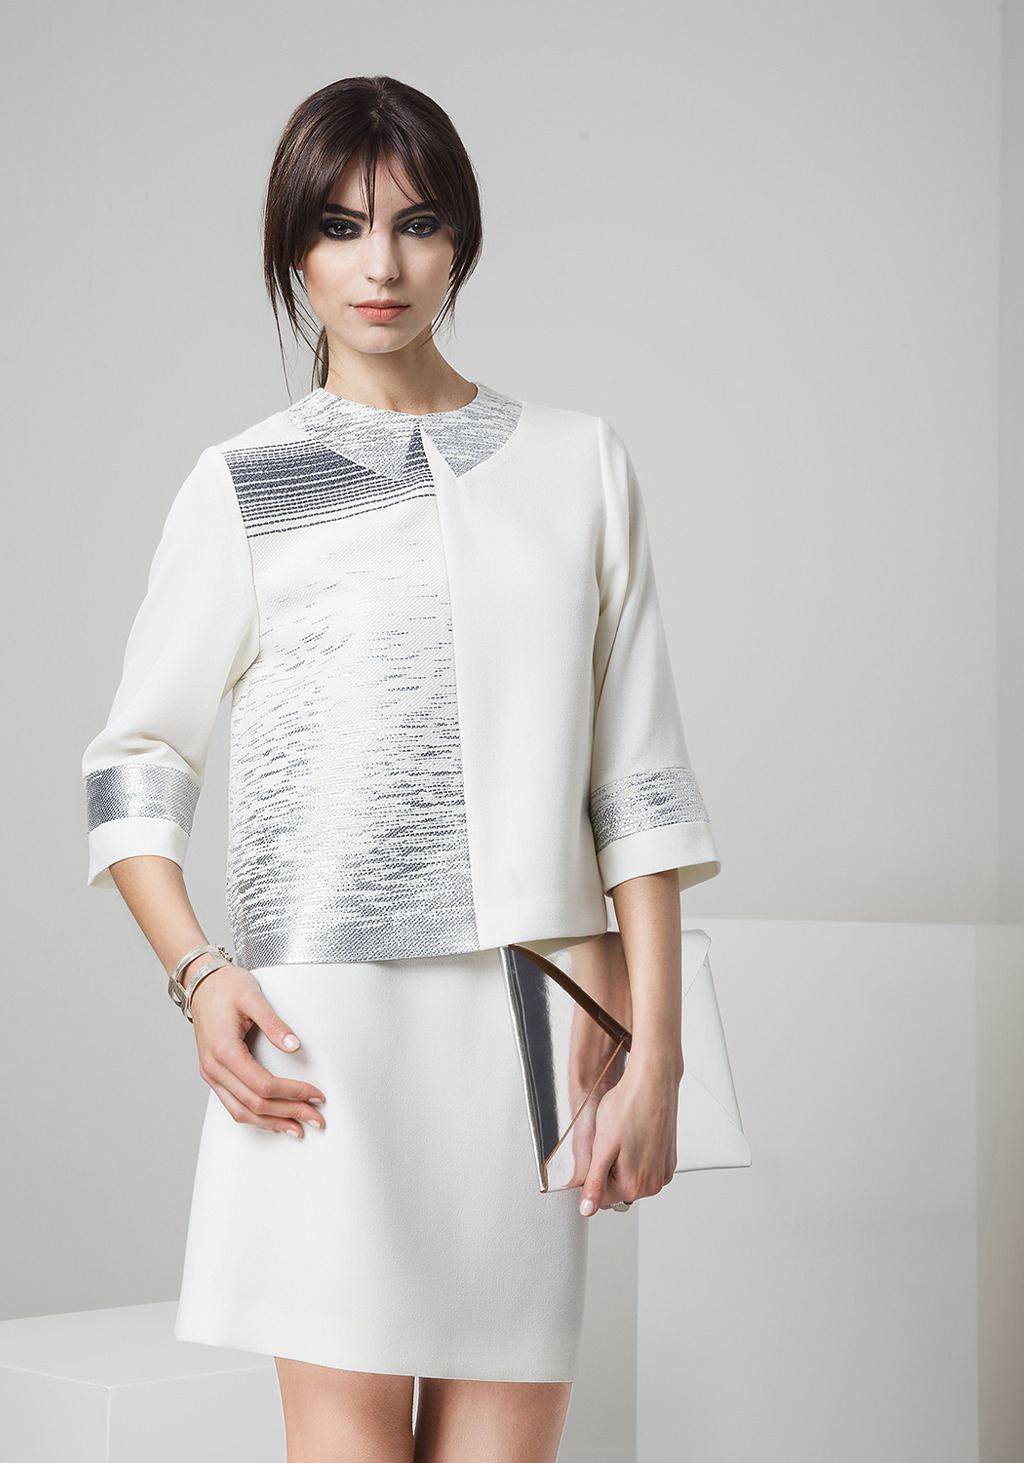 White wool crepe and jacquard top - white wool crepe skirt